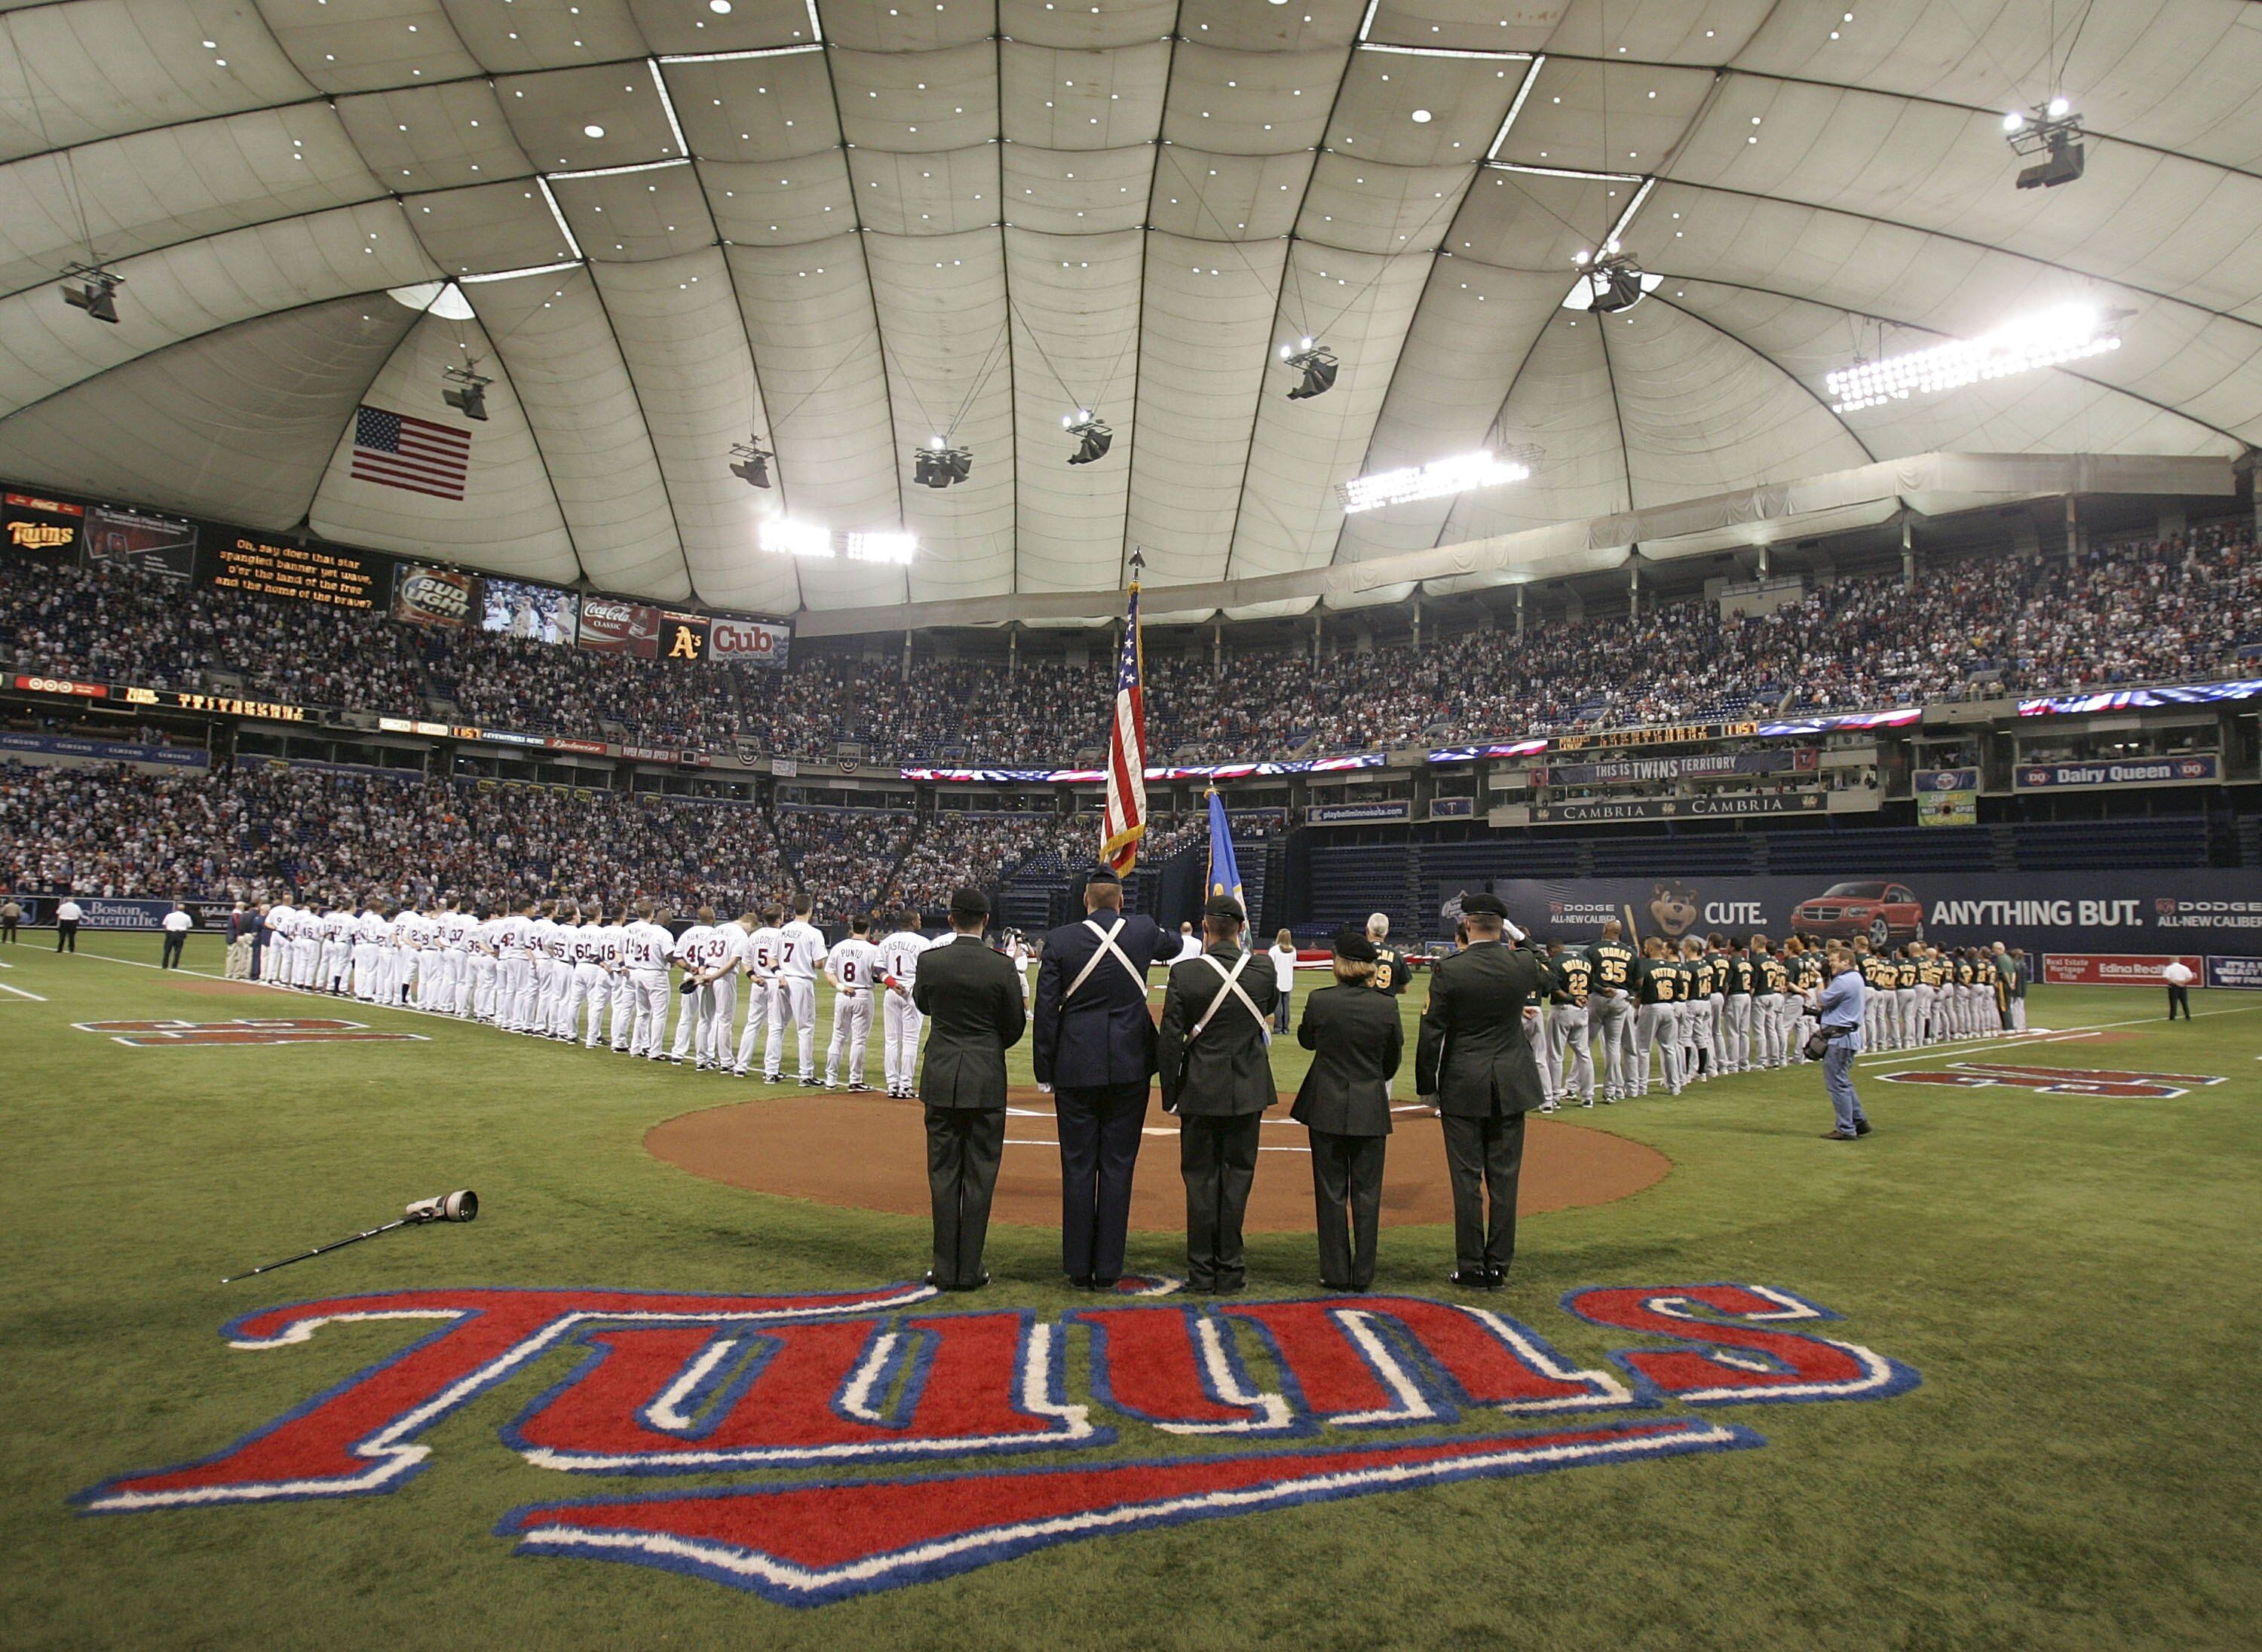 72077528-alds-game-1-oakland-as-v-minnesota-twins.jpg